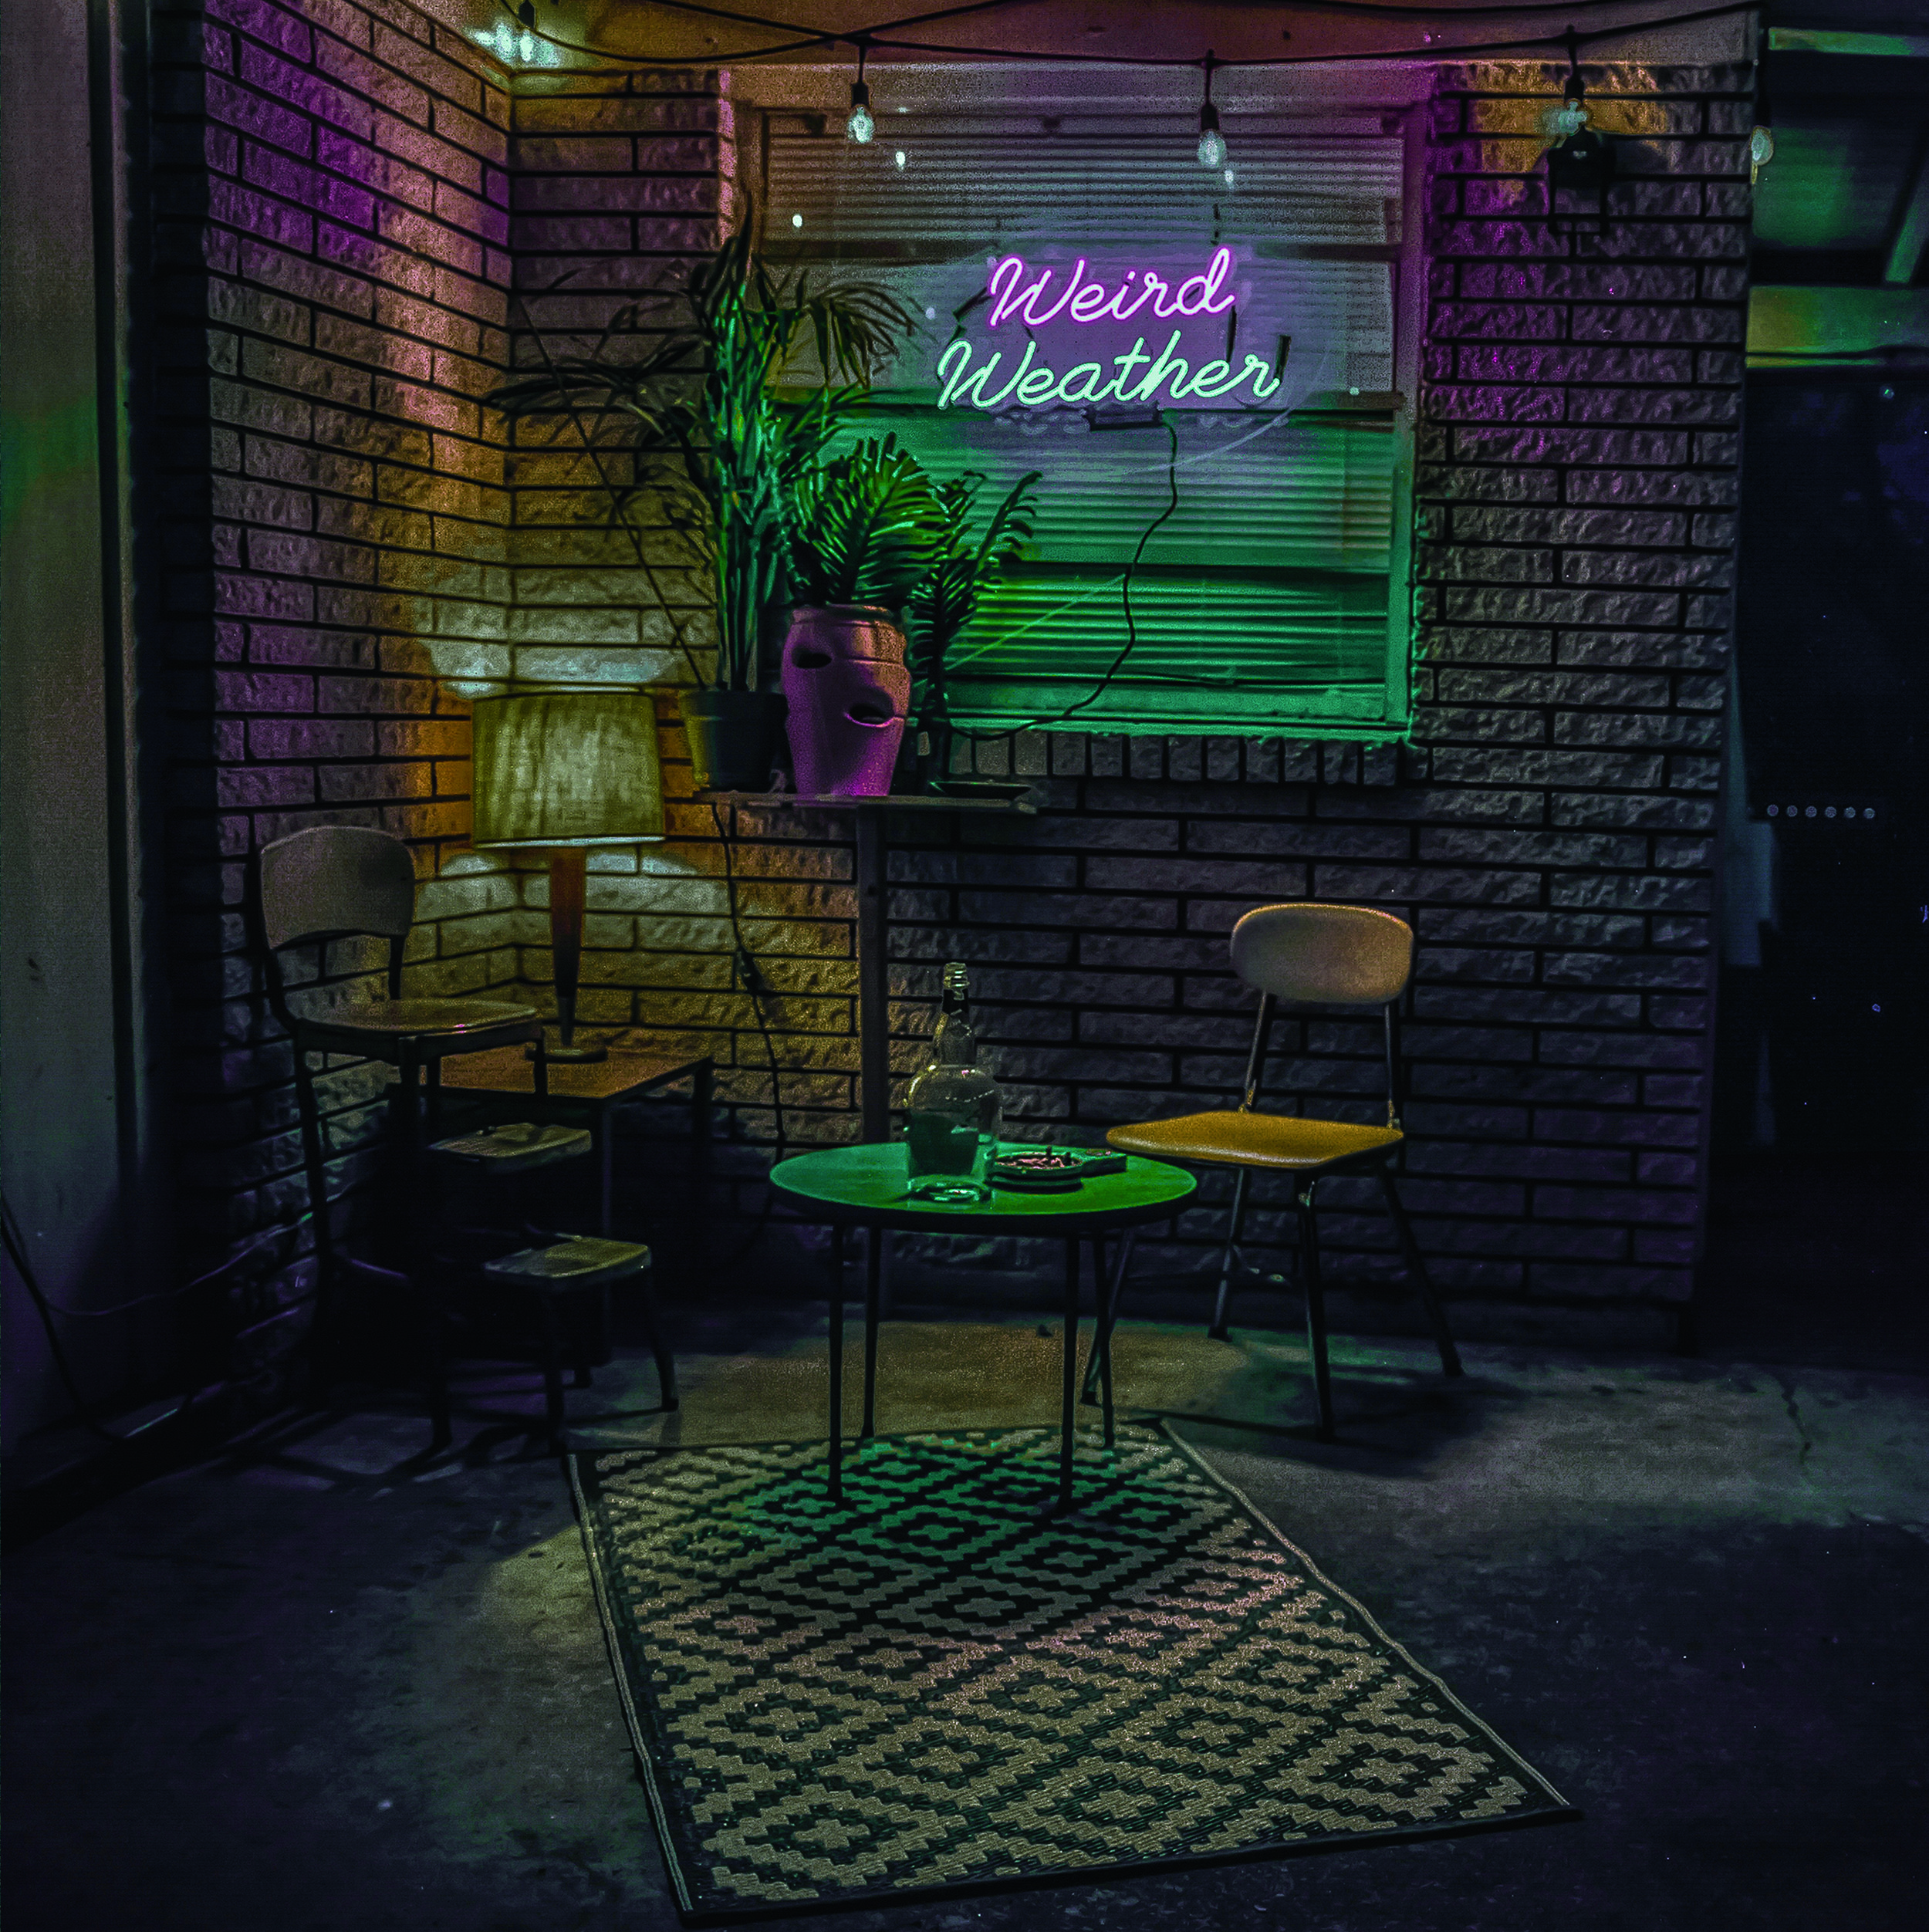 Shivery Shakes •Weird Weather - Shivery Shakes stand to set themselves apart with their own blend of fuzzy, surfy music, as sharp with pop hooks as it is smooth with reverb tinged melodies.Their new album 'Weird Weather' is a neon-laced night-drive of a record with electric melodies.